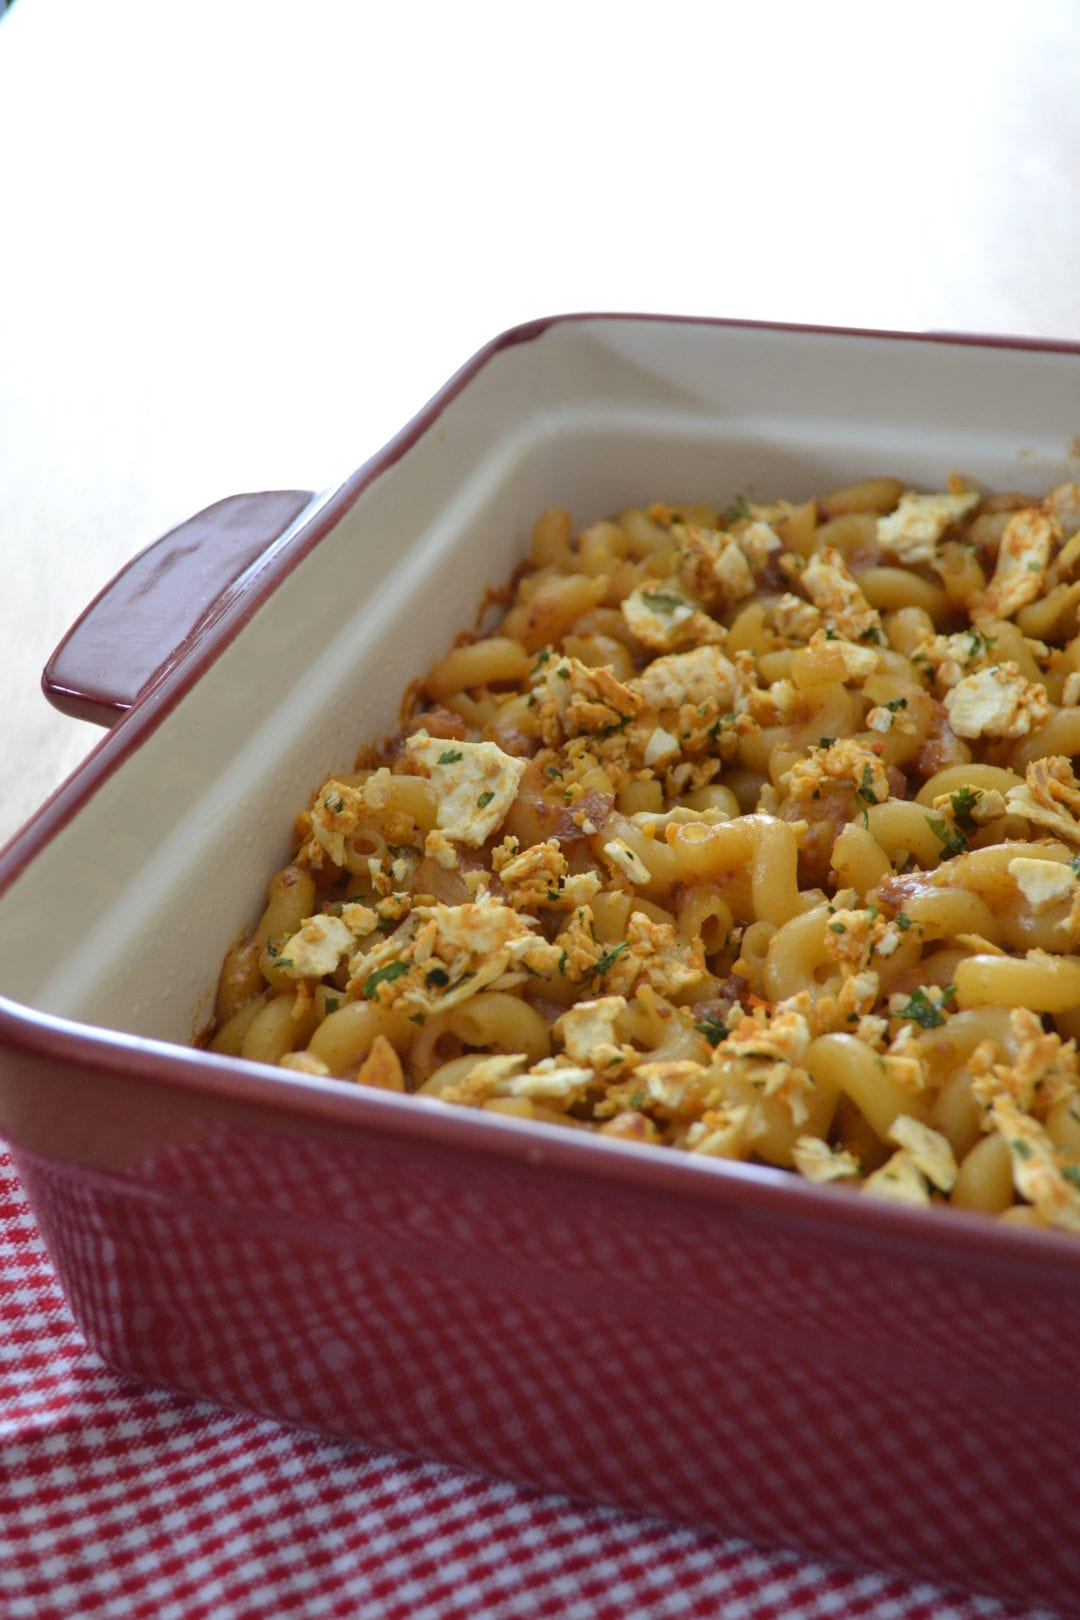 ... health as macaroni and cheese is, it is just too darn good to pass up